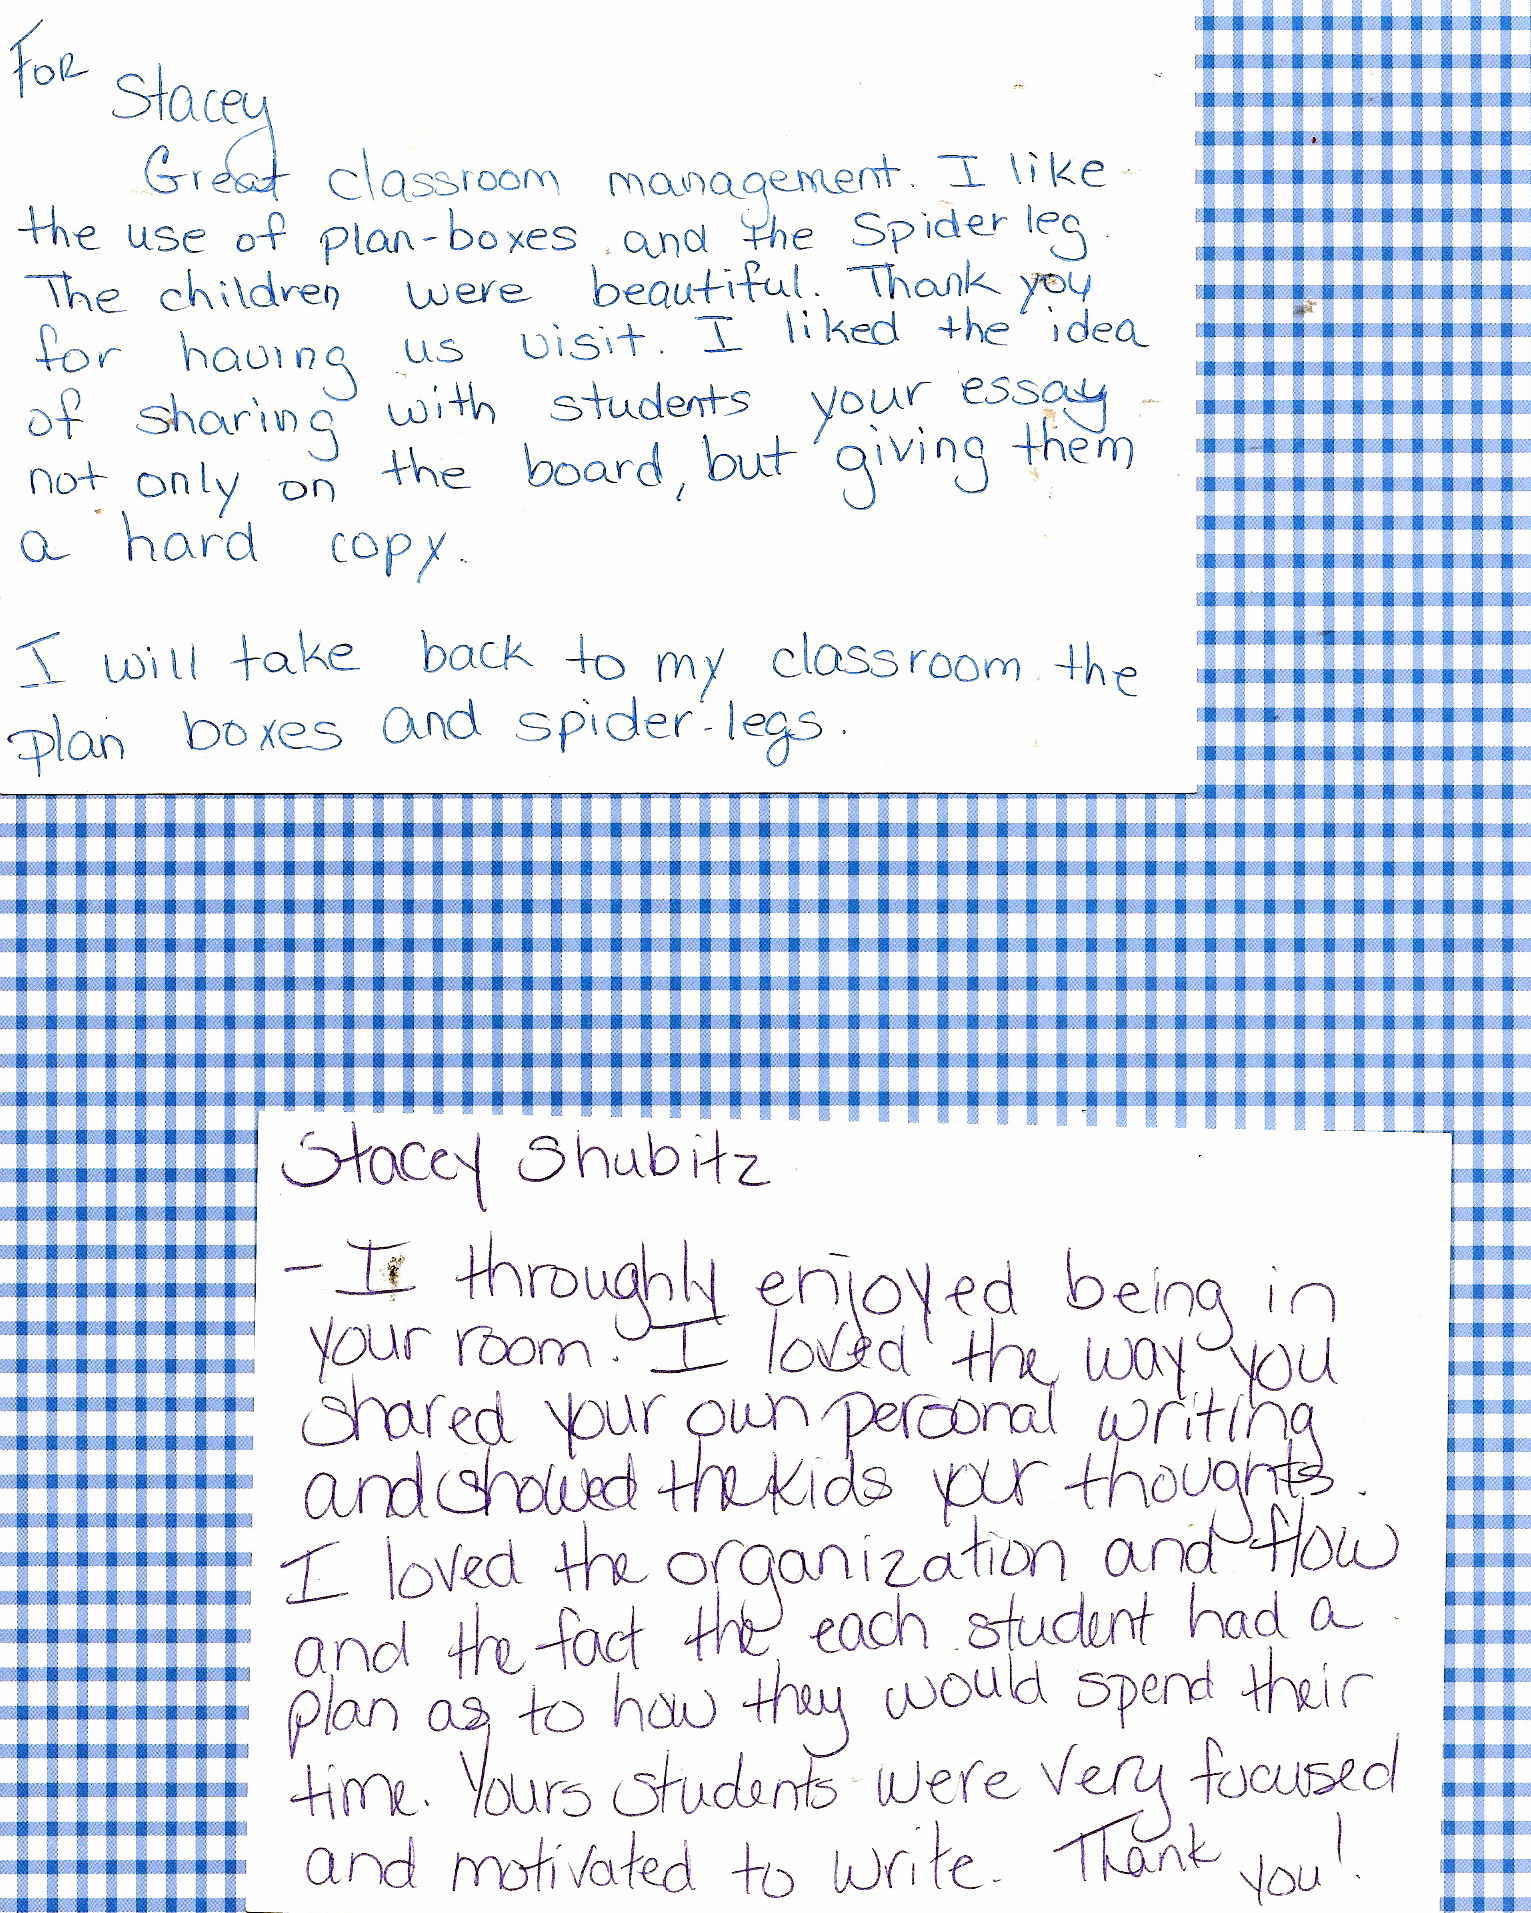 Thank You Notes. Farewell Letter To Coworkers Heartfelt. View Original ...